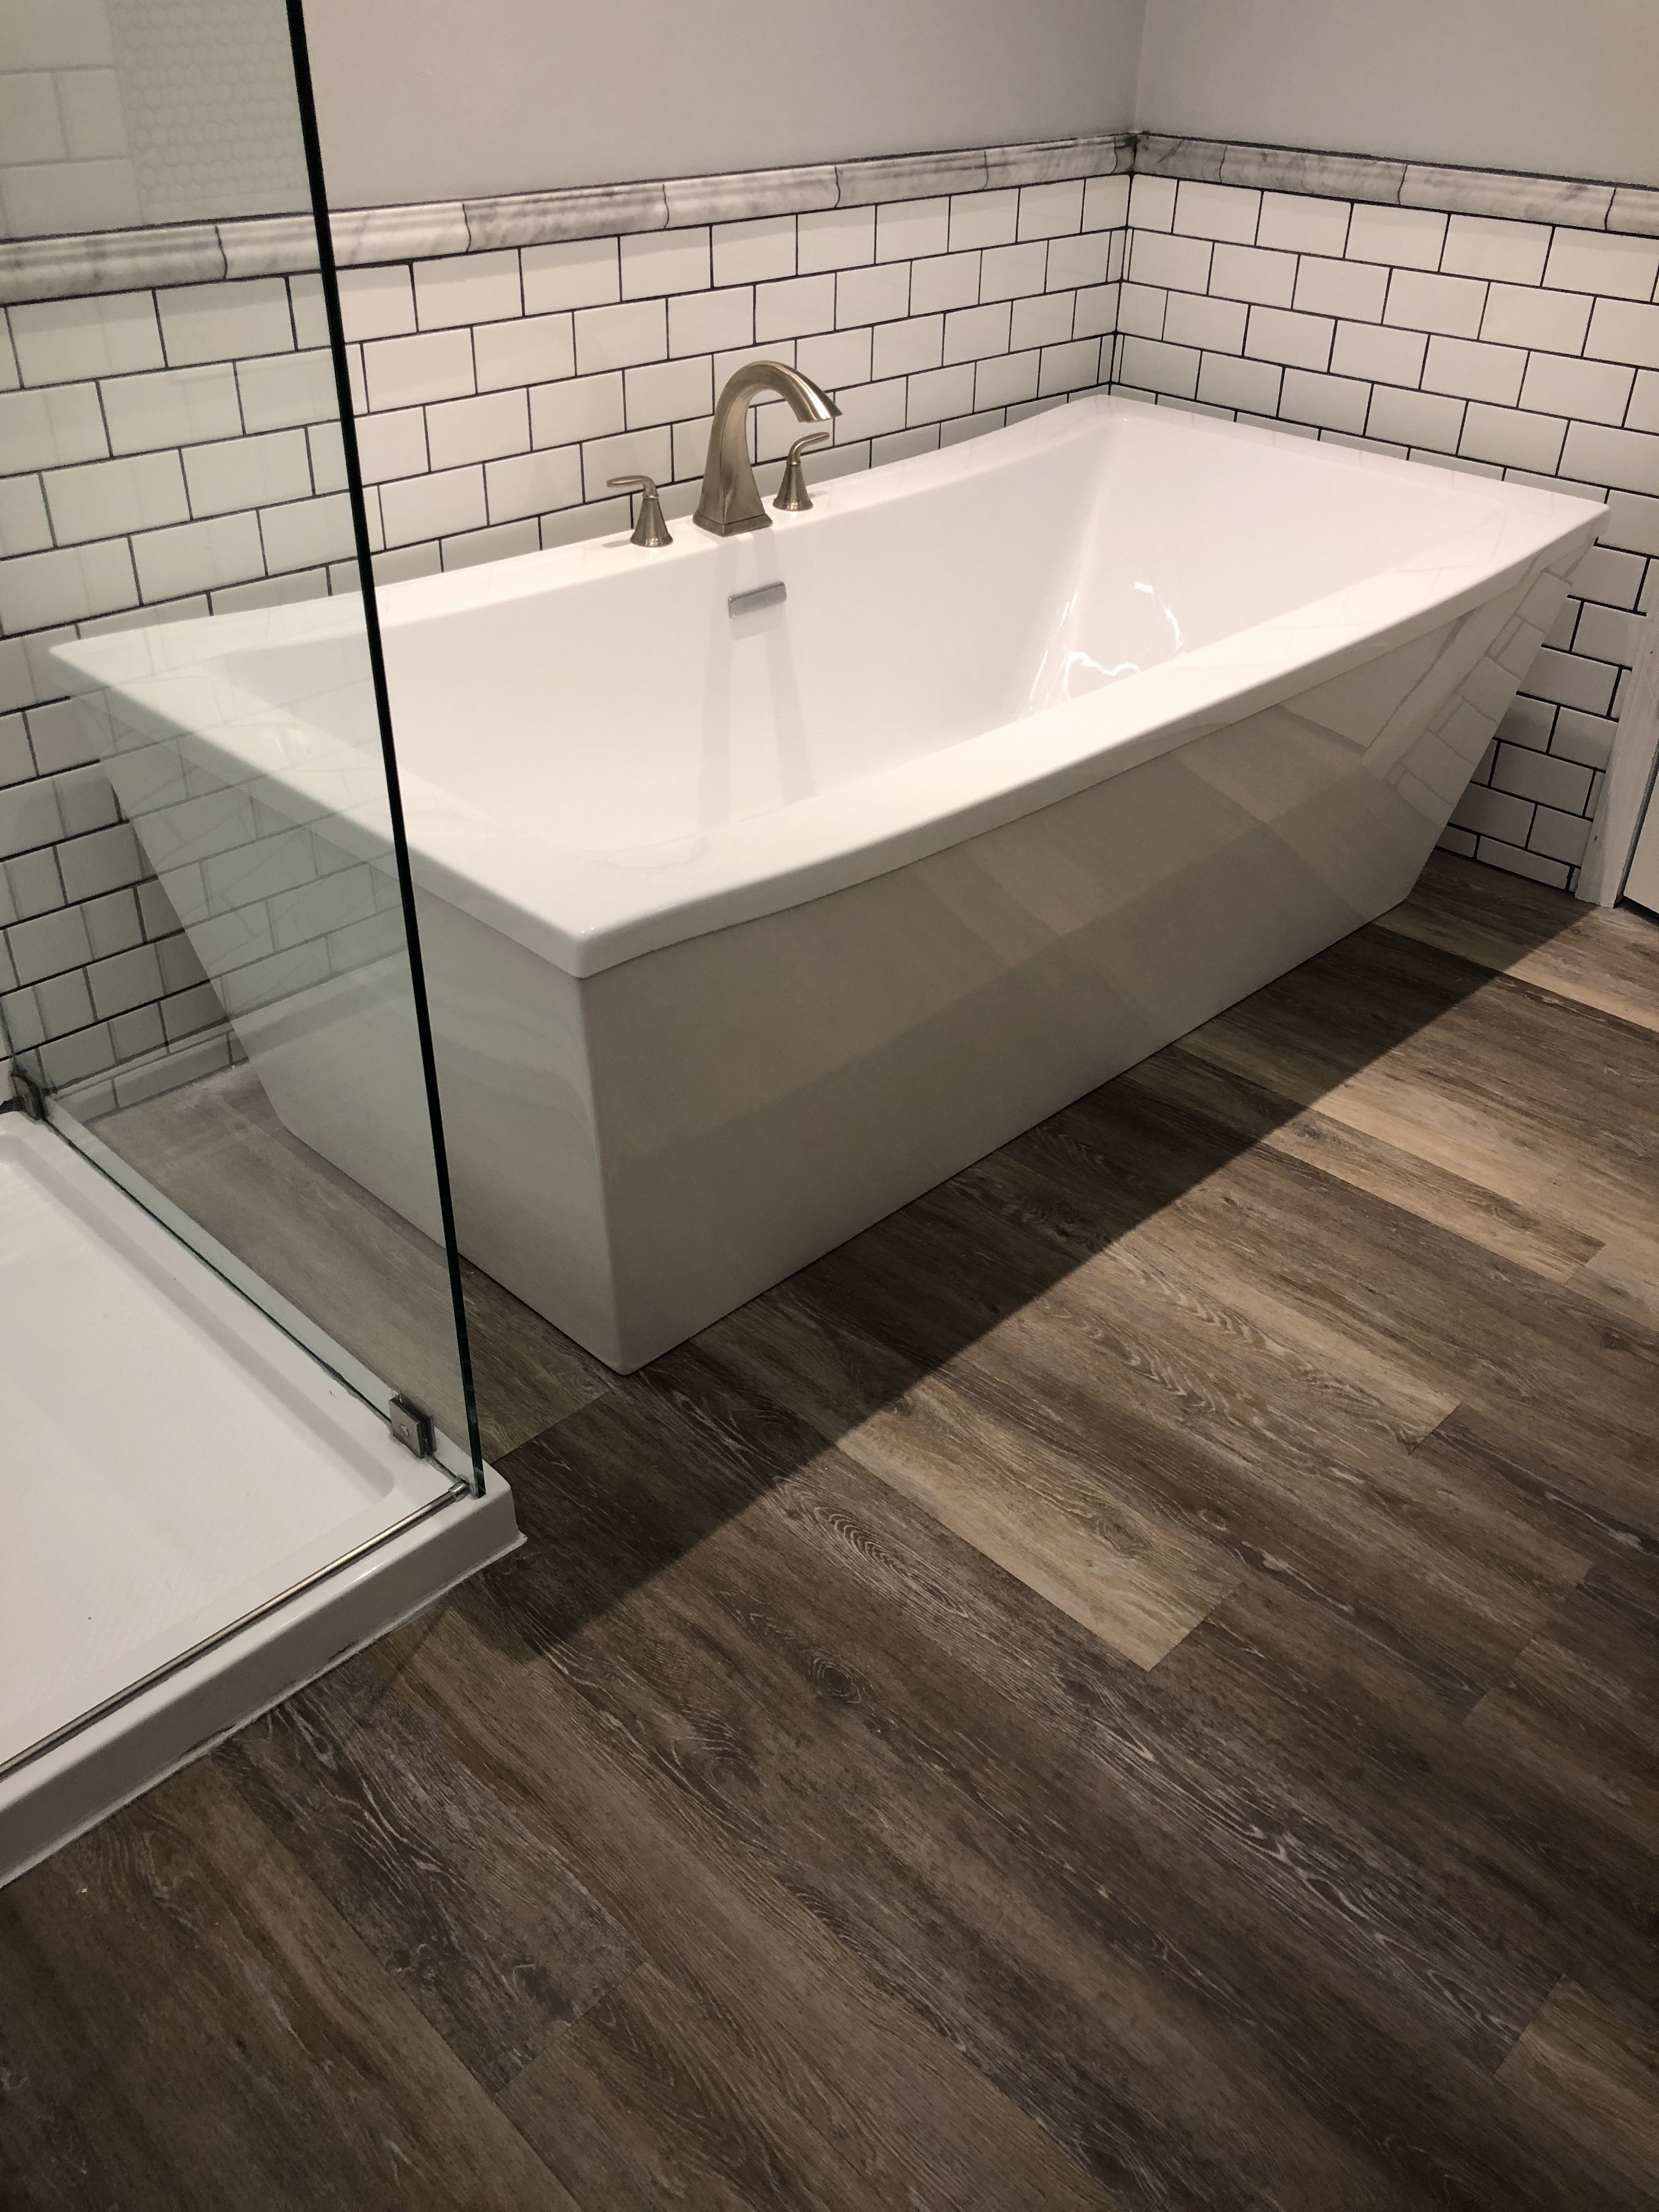 Freestanding Soaking Tub White Subway Tile With Grey Grout